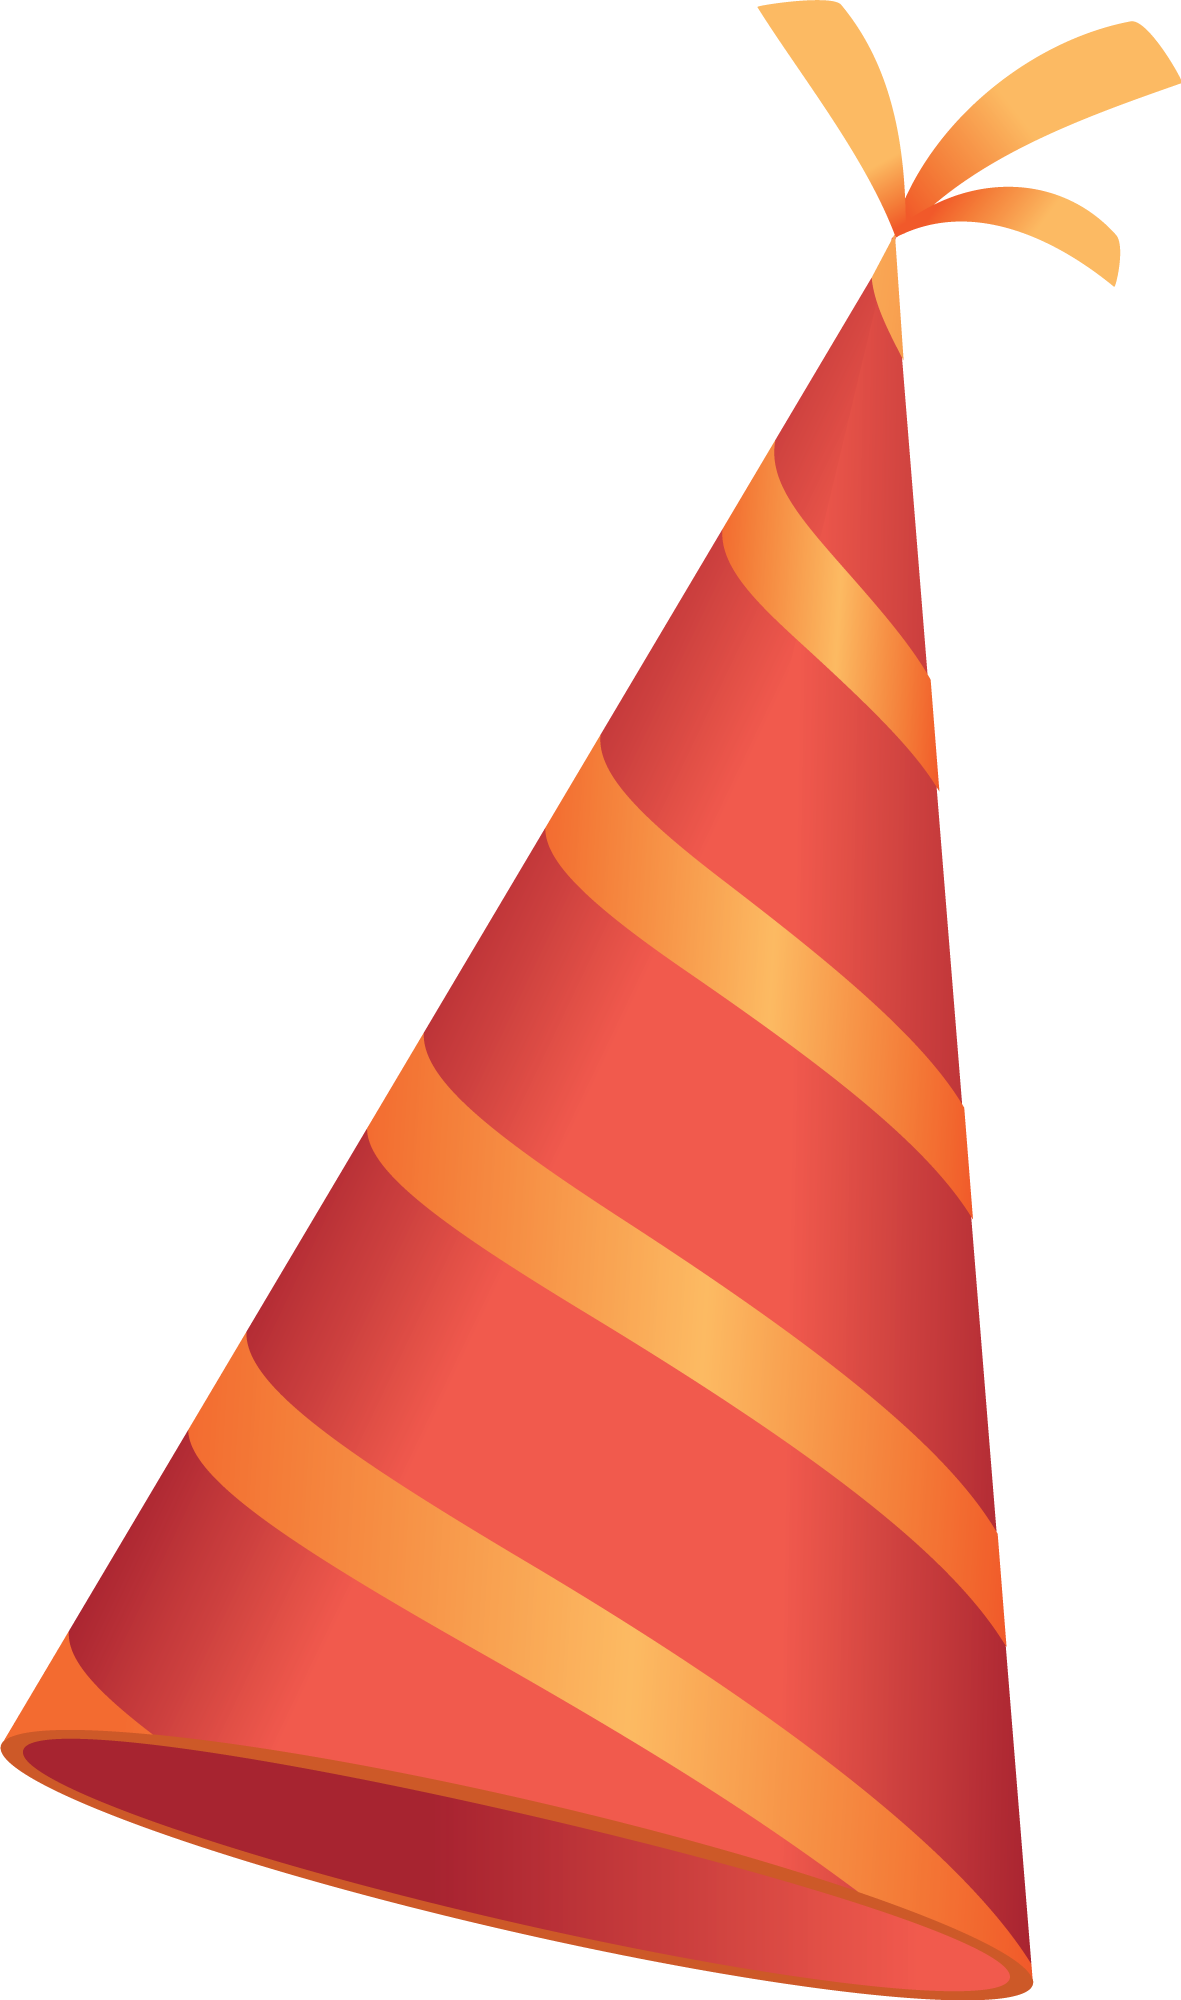 Birthday hat clip art clipart wikiclipart 2.